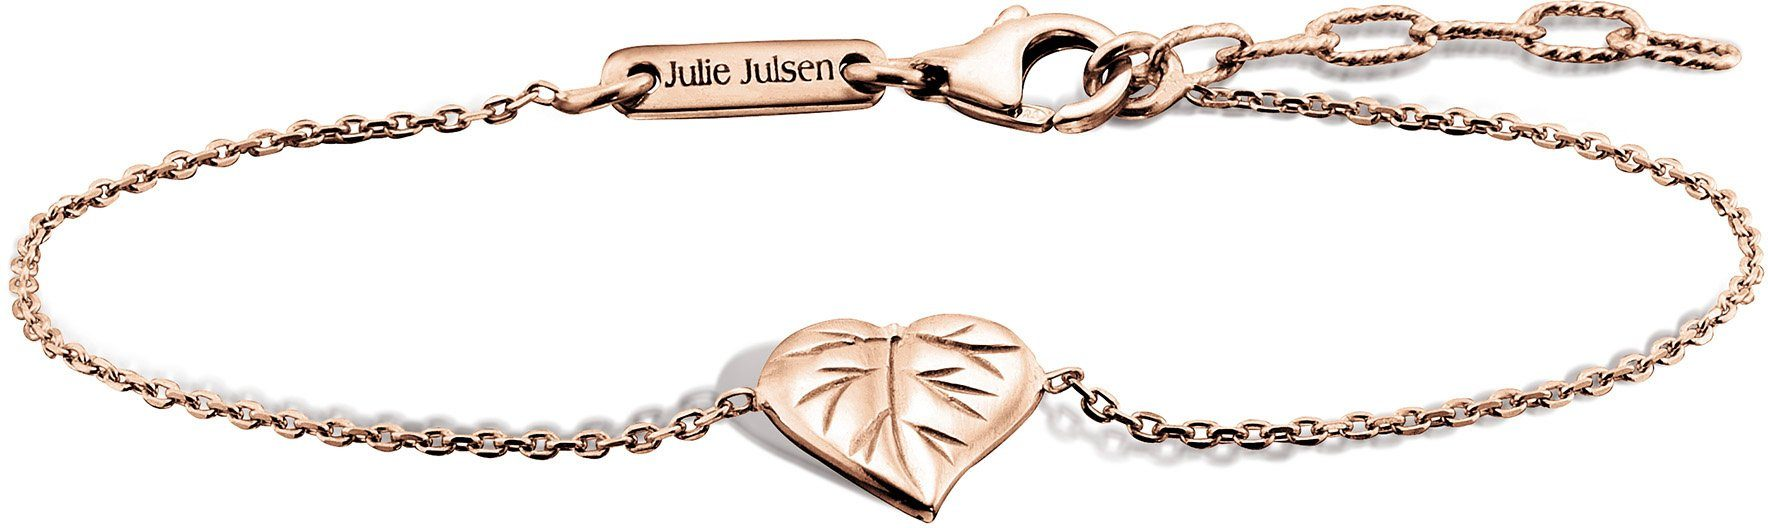 Julie Julsen Armkette, »Petite COLLECTION, Blatt, JJBR9824.2«